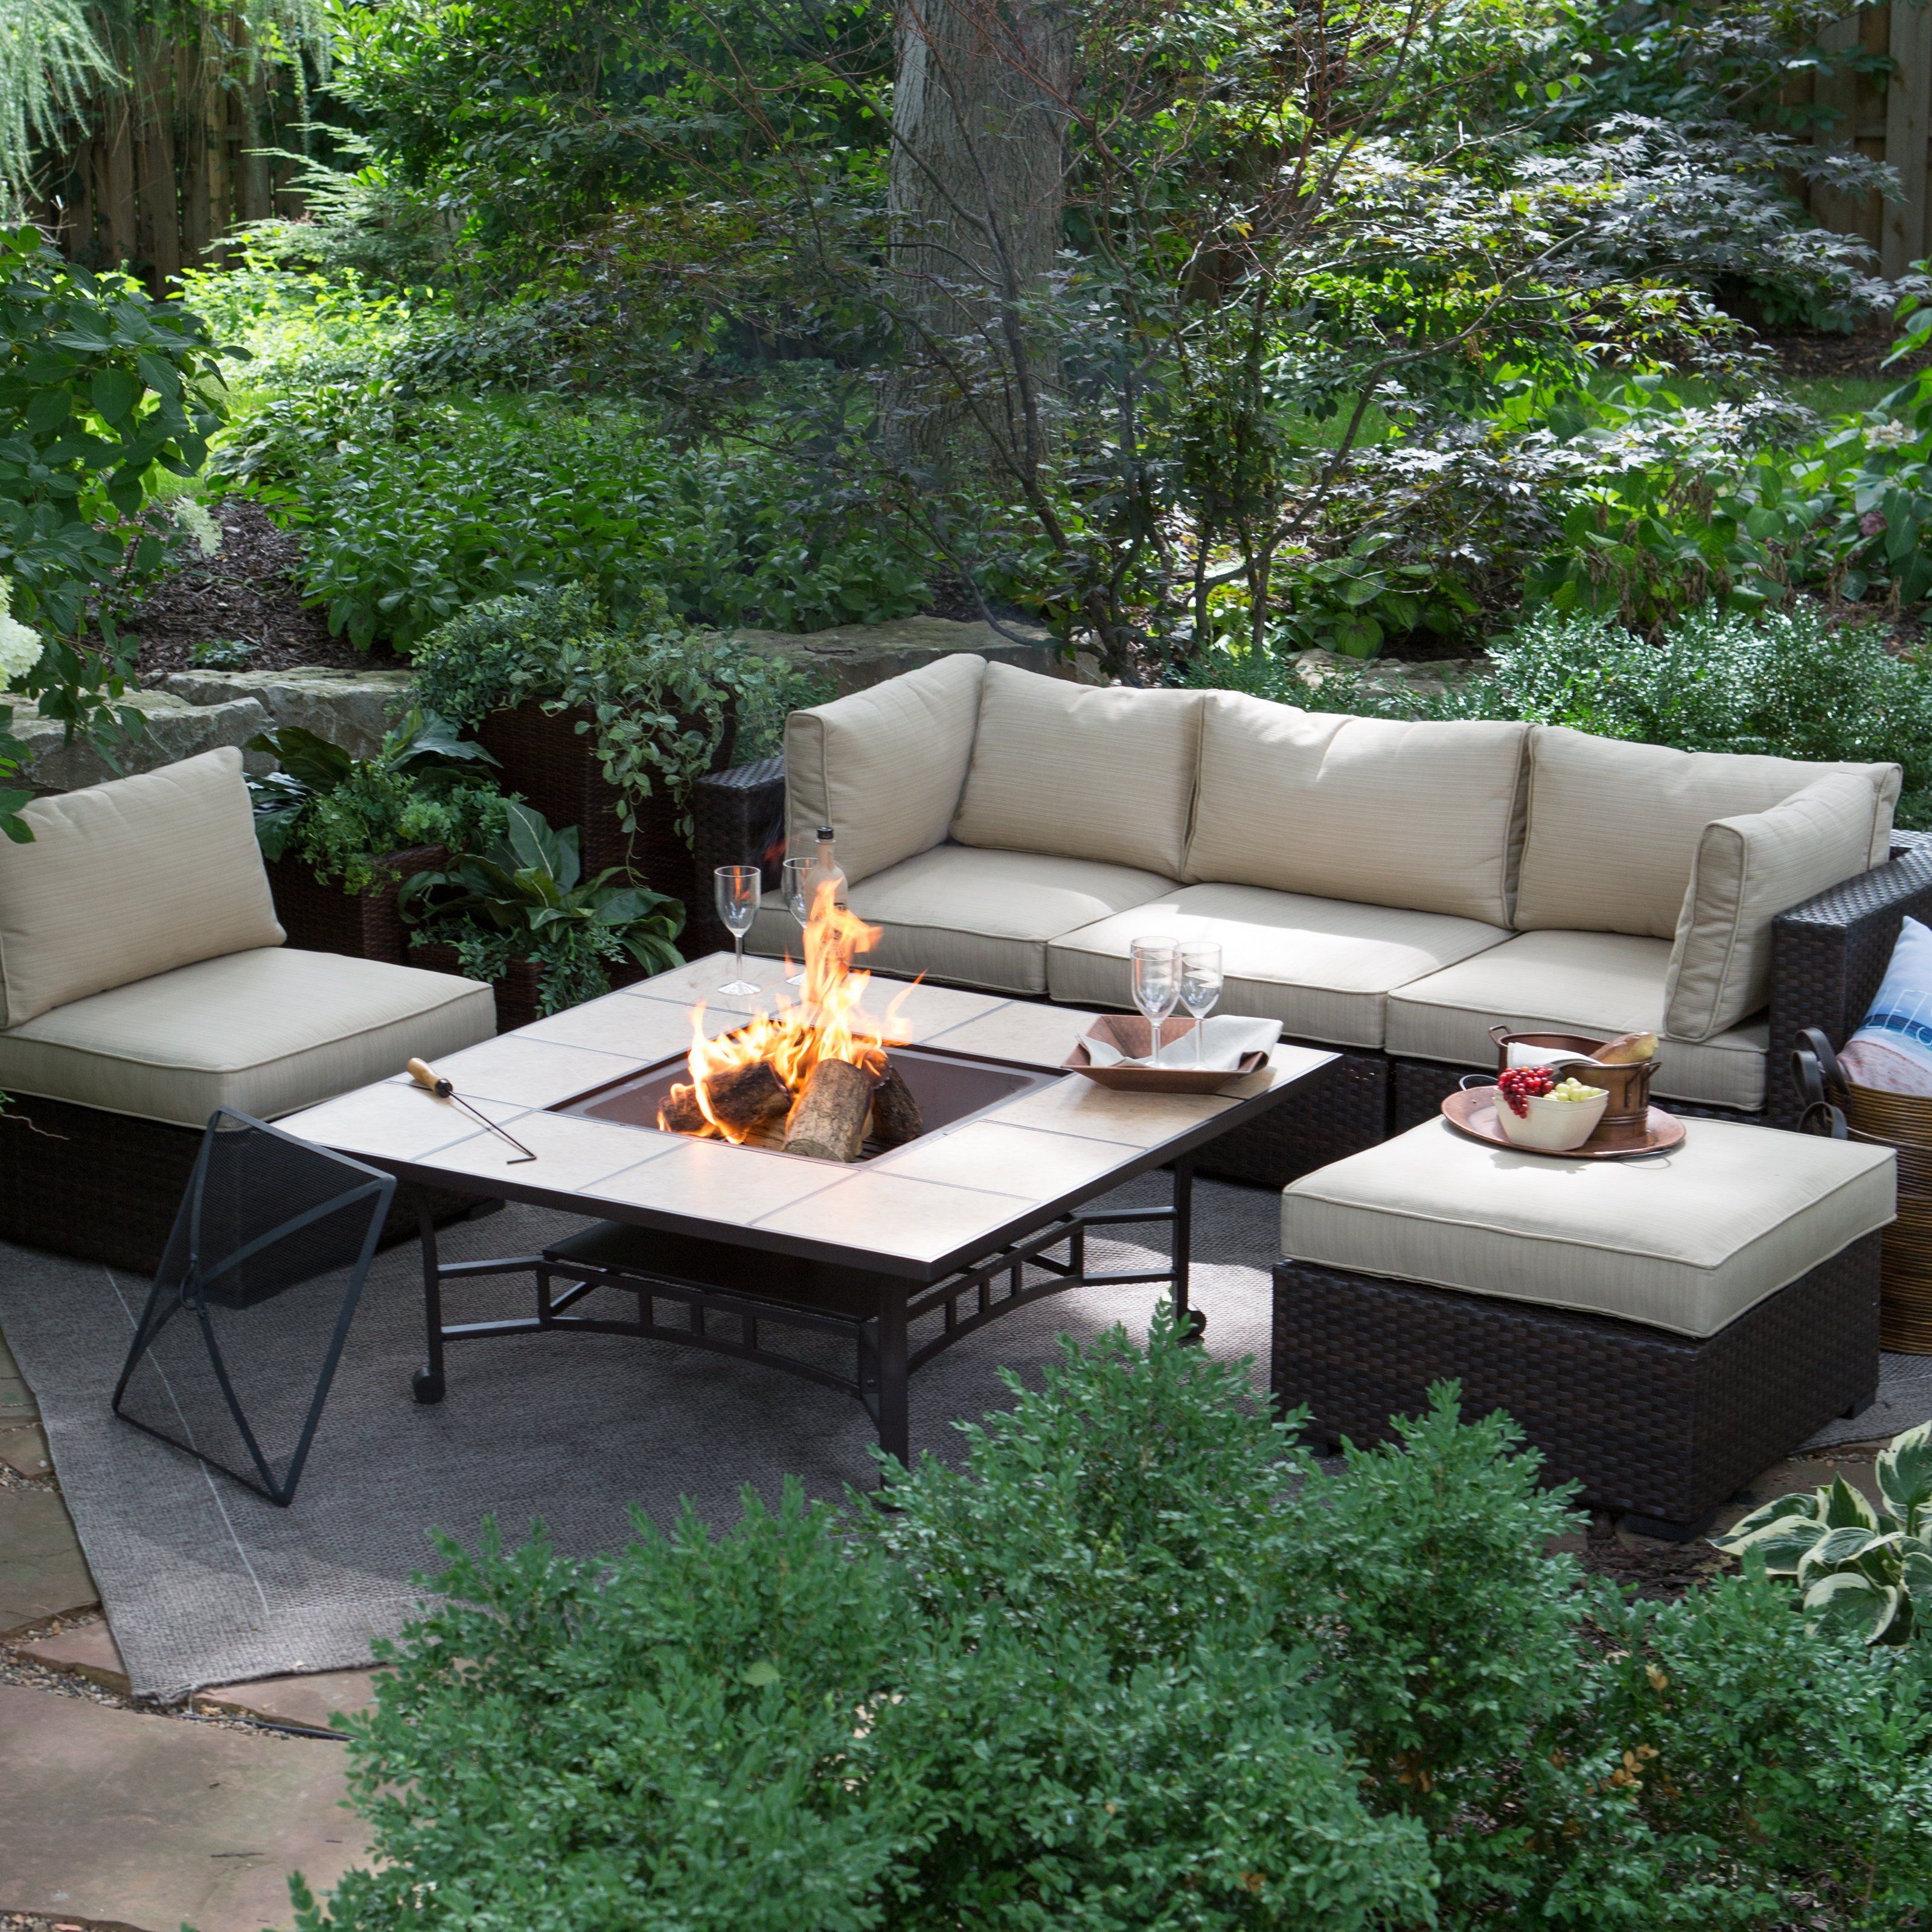 Outdoor belham living marcella all weather wicker 50 in fire pit chat set ttlc502